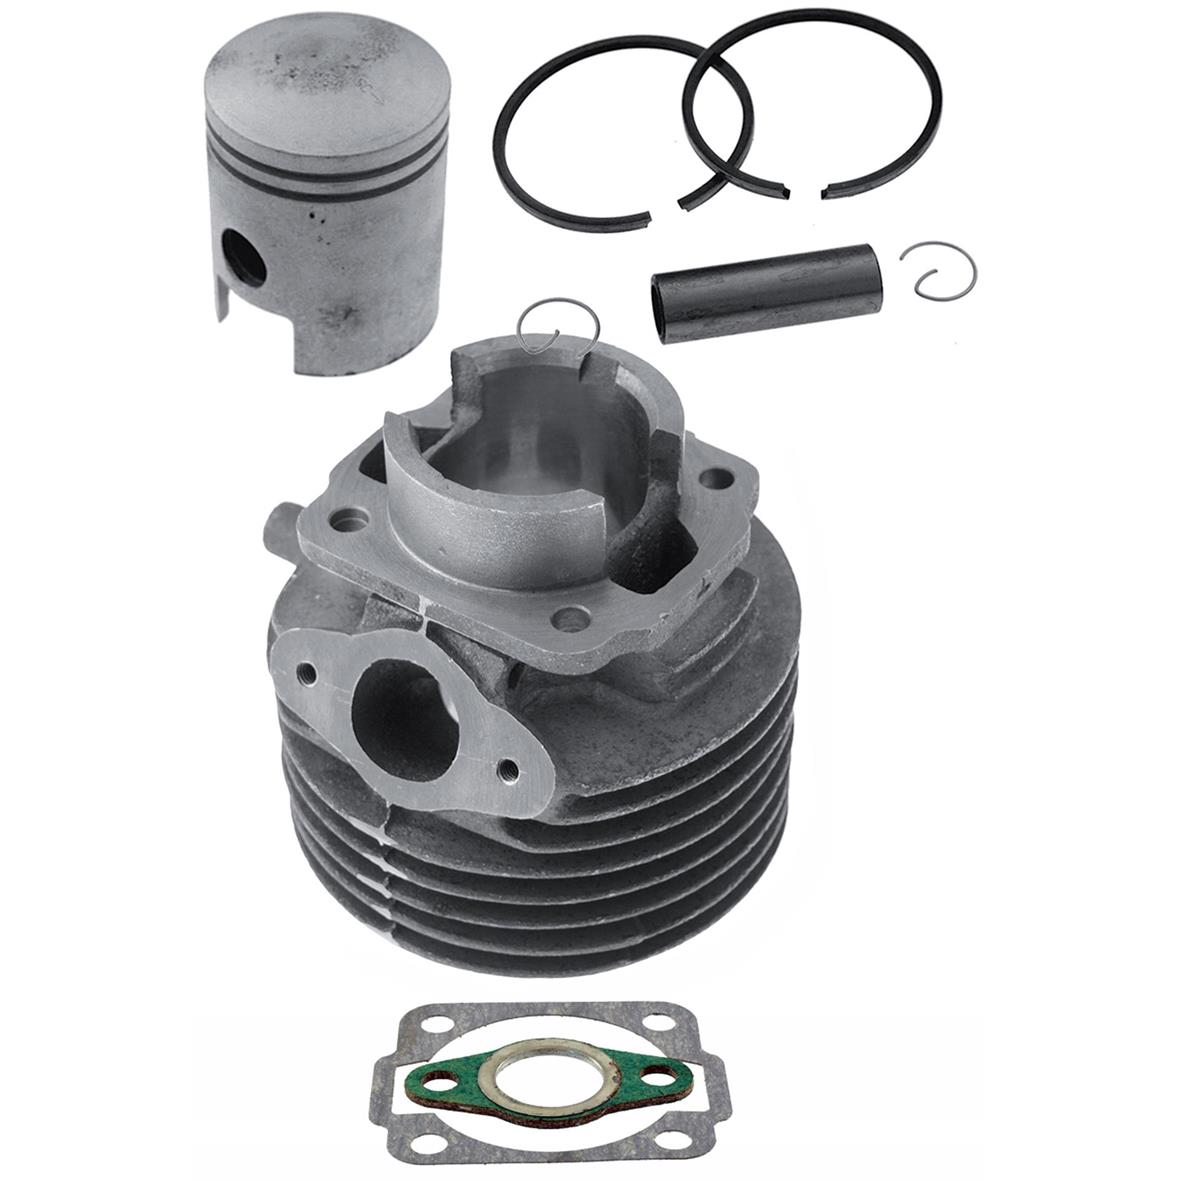 Product Image for 'Cylinder Kit RMS 50 ccTitle'